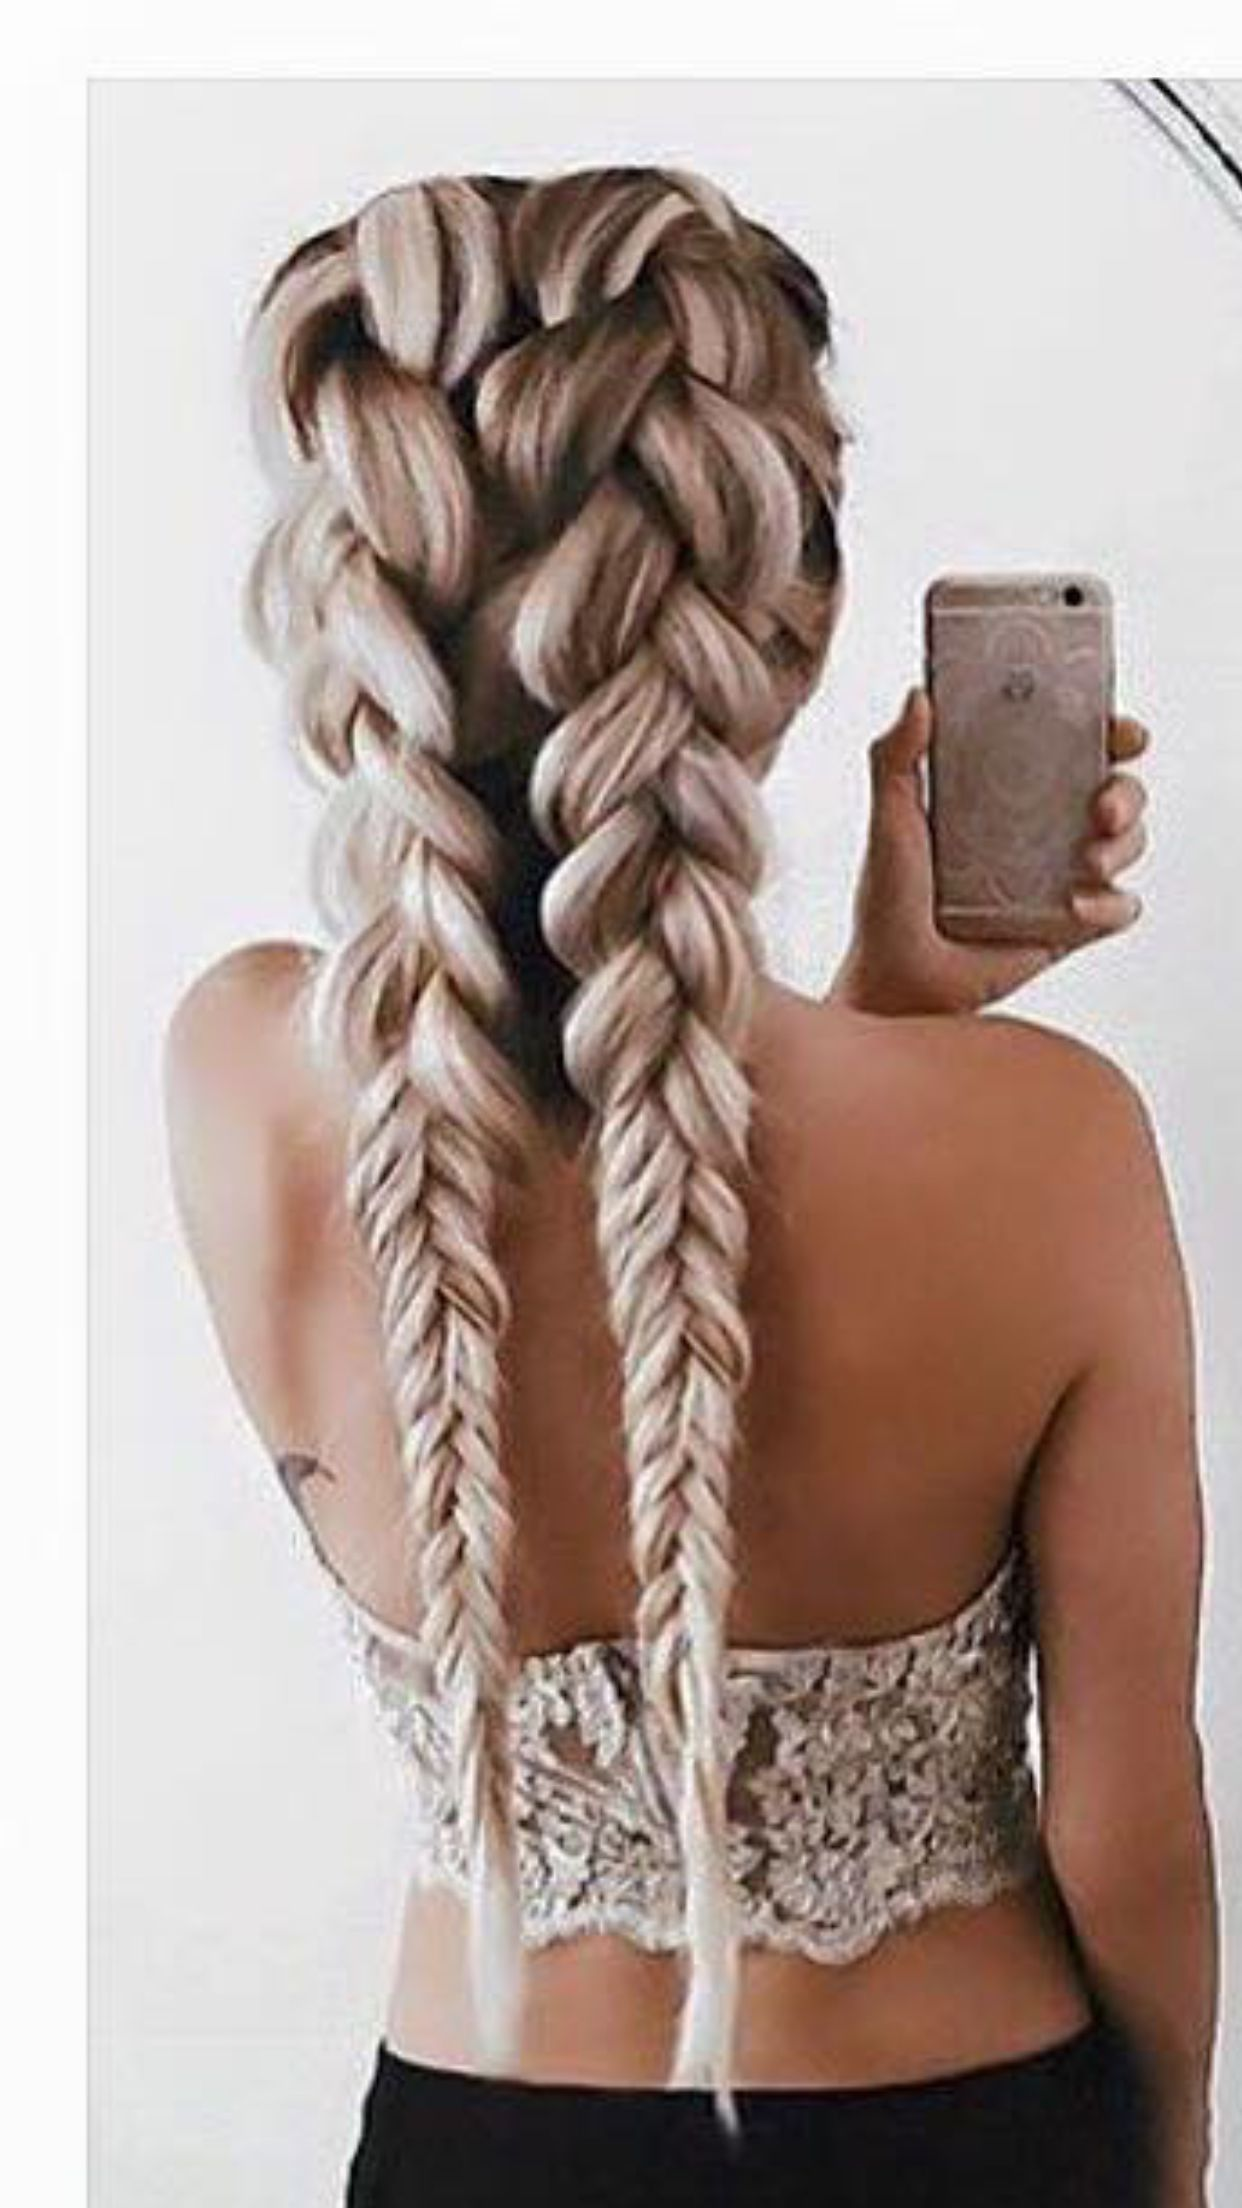 Trying this soon braids pinterest hair style hair goals and